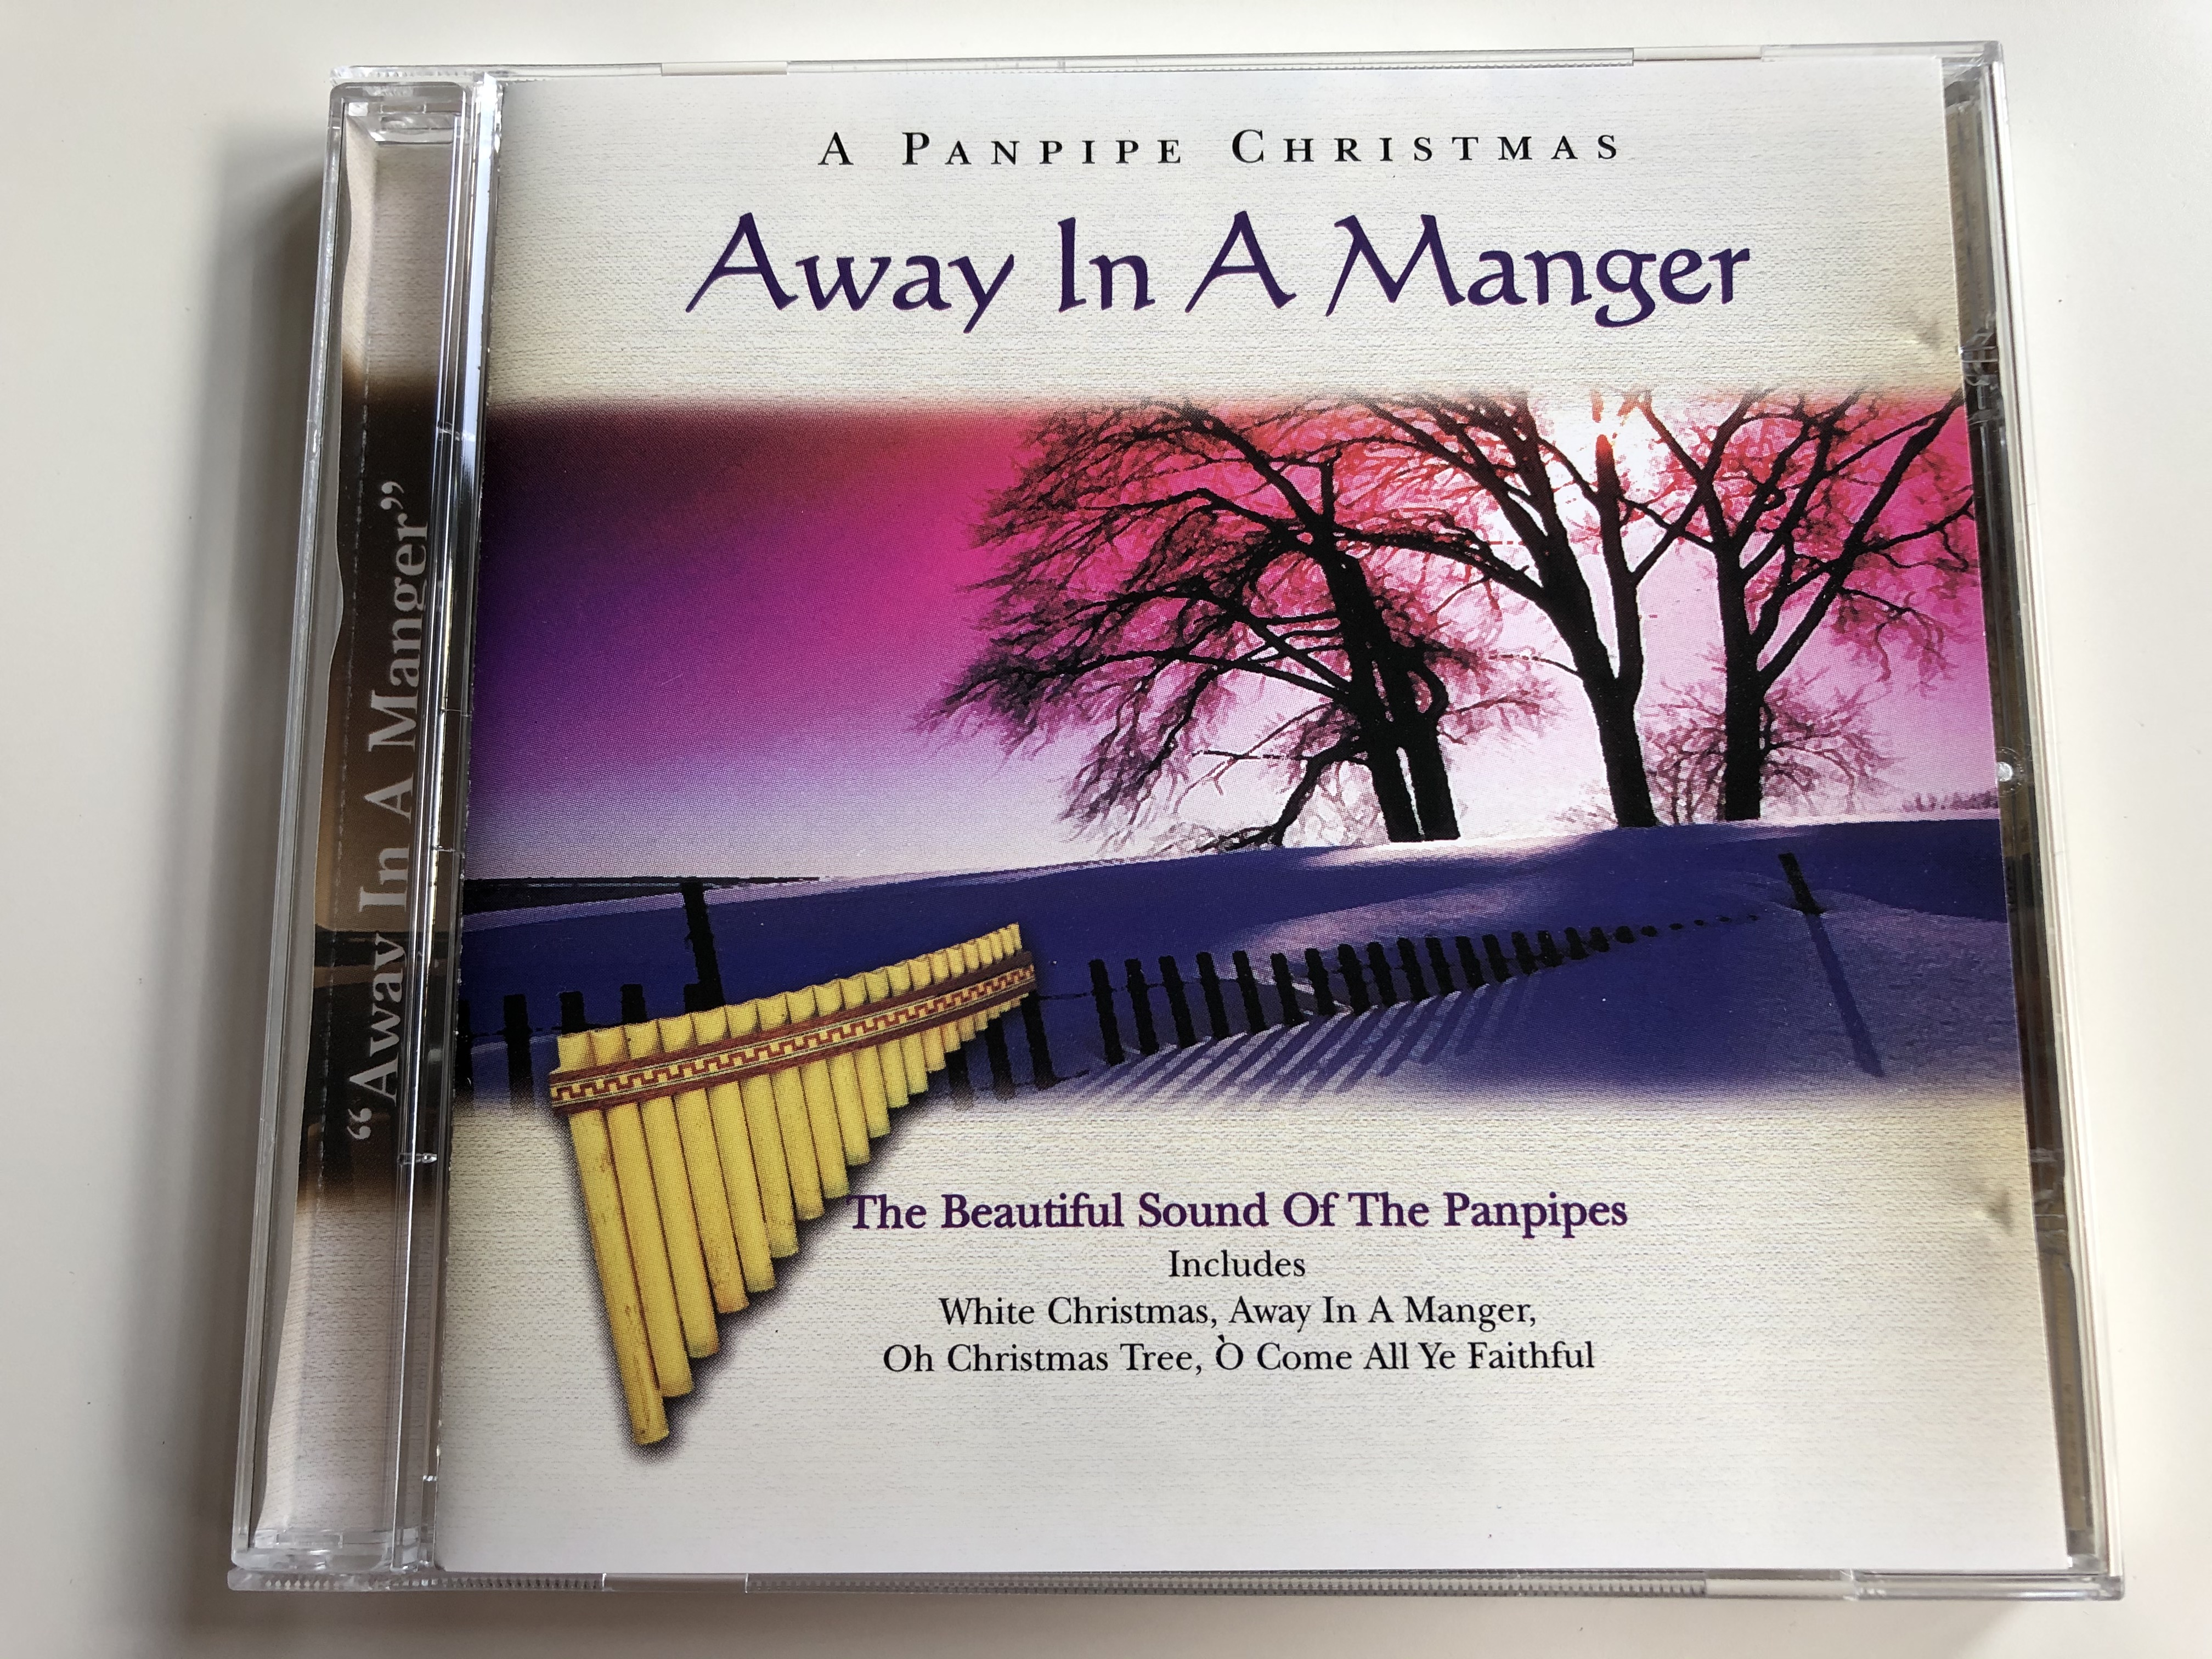 a-panpipe-christmas-away-in-a-manger-the-beautiful-sound-of-the-panpipes-includes-white-christmas-away-in-a-manger-oh-christmas-tree-o-come-all-ye-faithful-jingle-audio-cd-1997-12028-2-1-.jpg